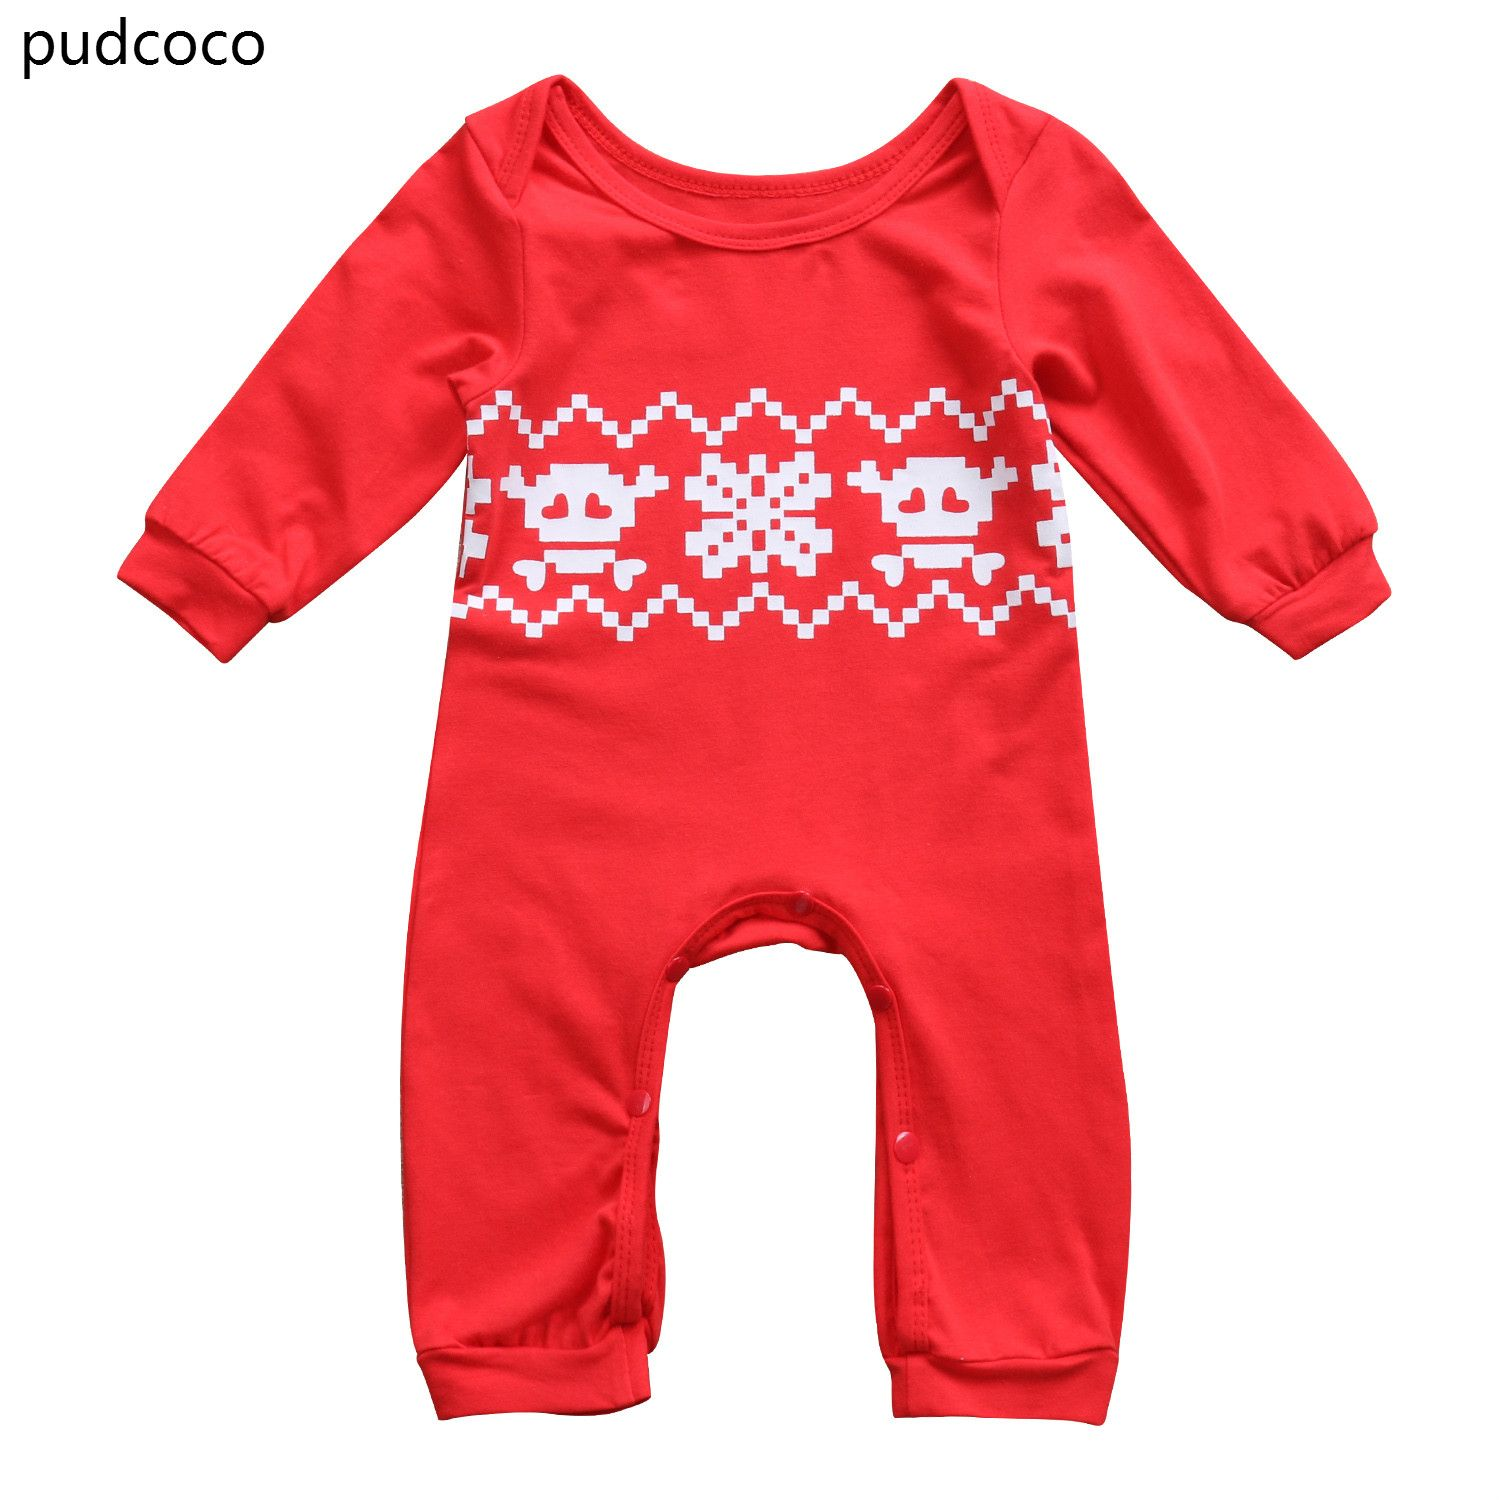 a938e06f9 Christmas Baby Boys Girl Red Rpmpers Infant Kids Long Sleeve Print ...